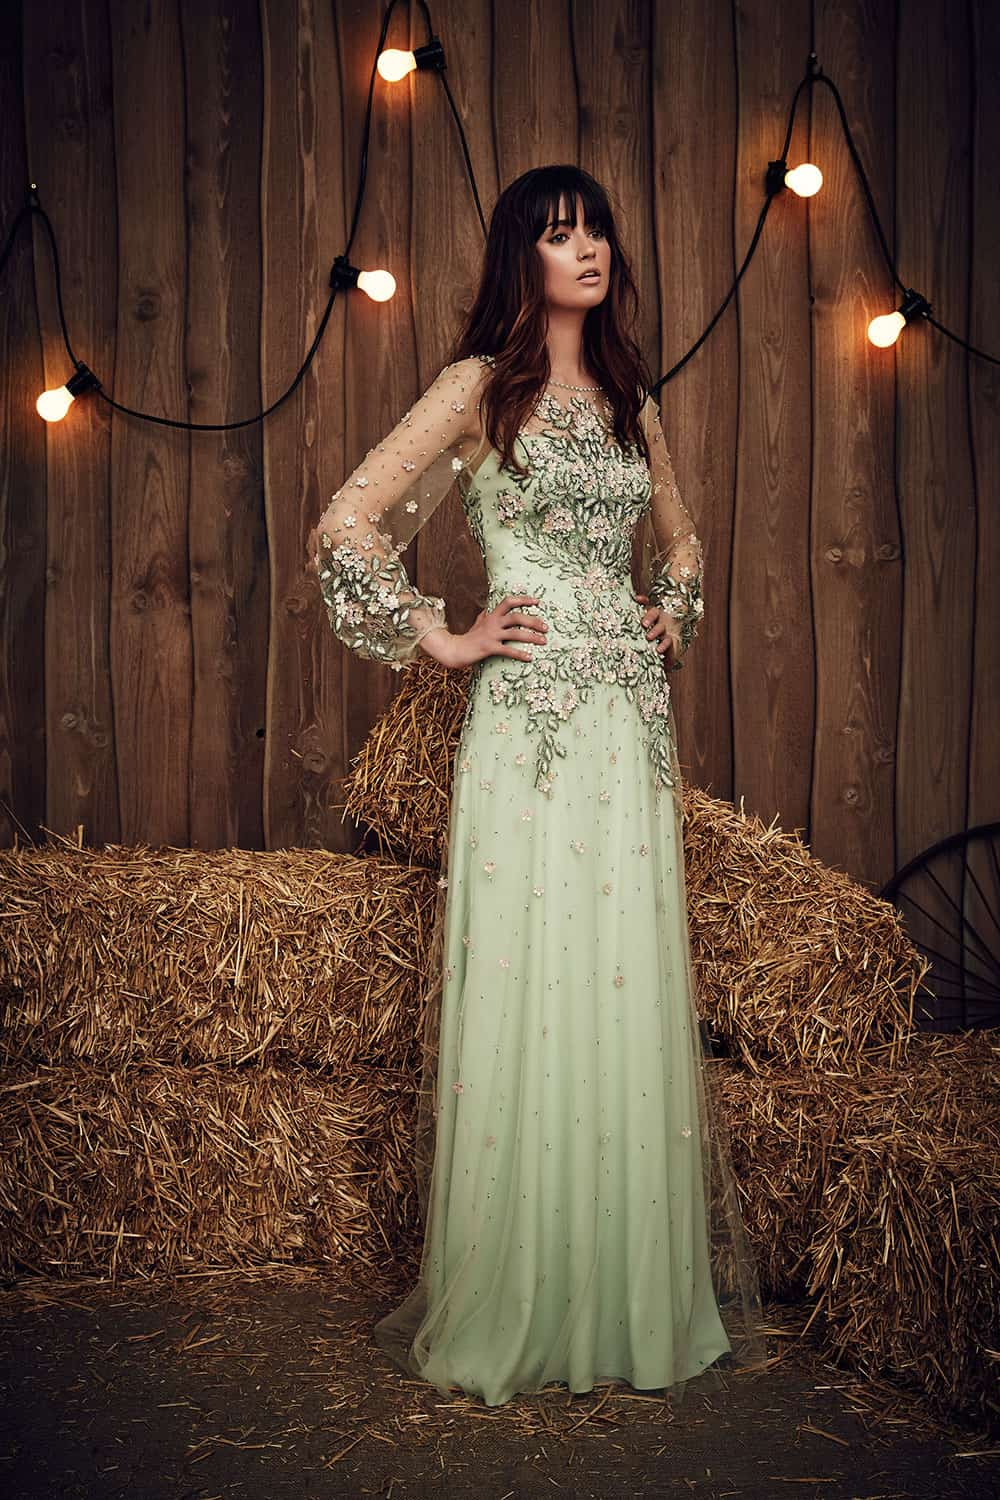 Mint toned embellished wedding gown from Jenny Packham.